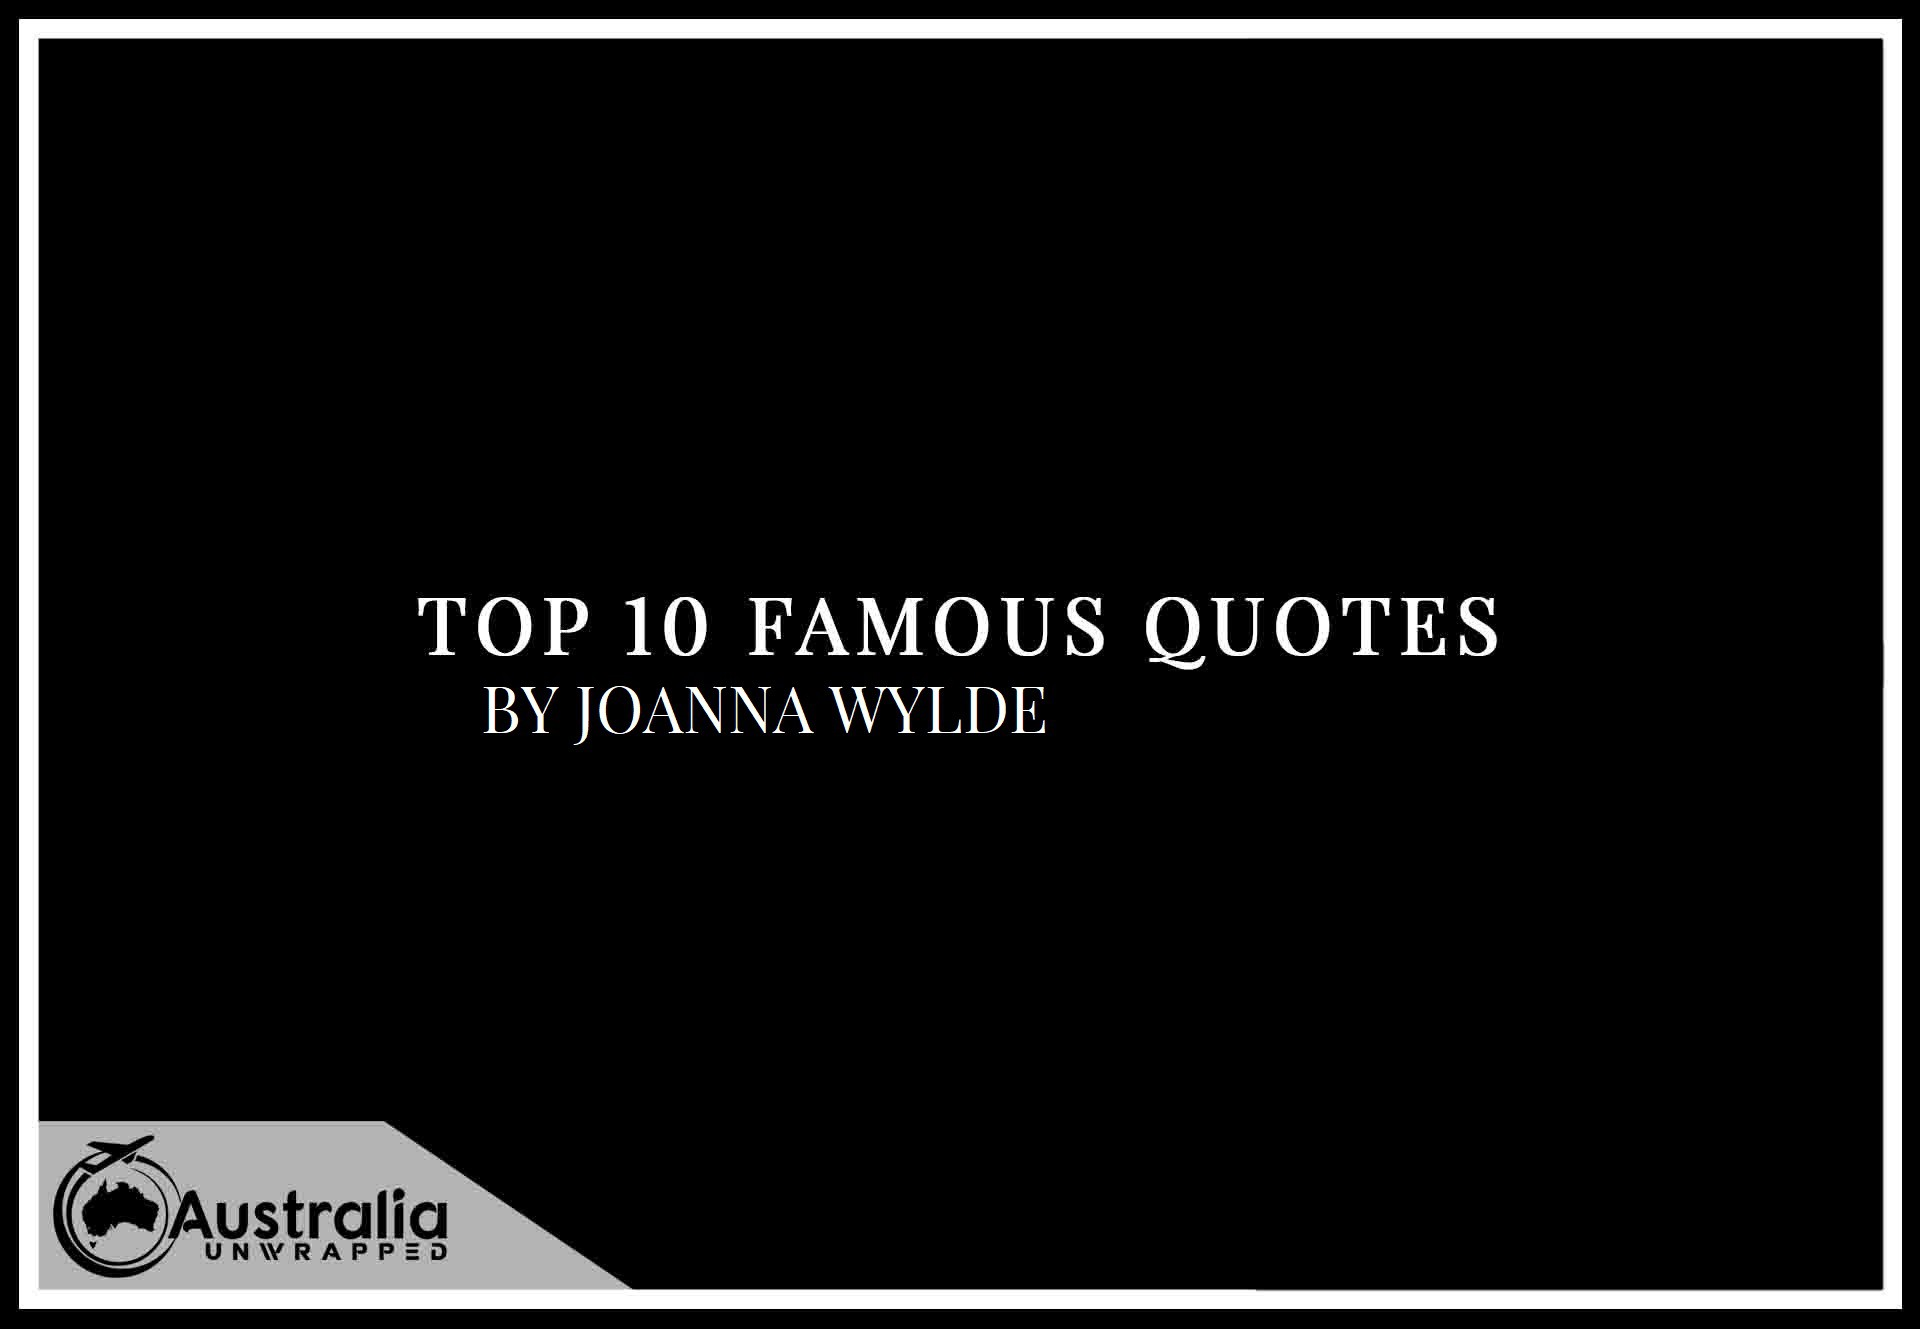 Top 10 Famous Quotes by Author Joanna Wylde